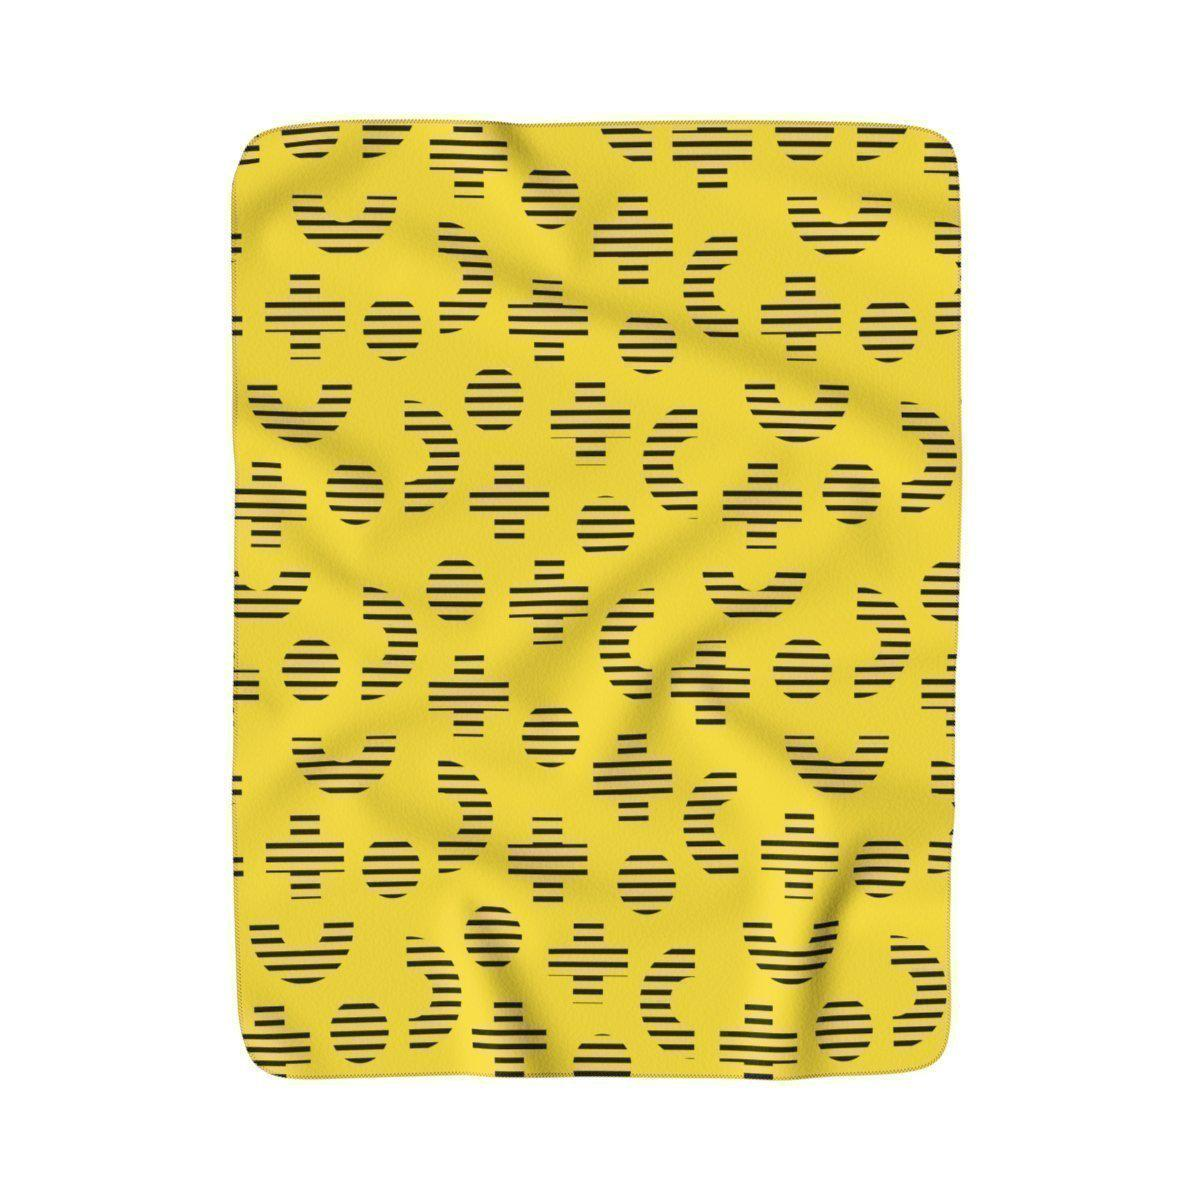 Maison d'Elite Retro Memphis Sherpa Fleece Blanket-Home - Throws & Blankets-Maison d'Elite-50x60-Très Elite